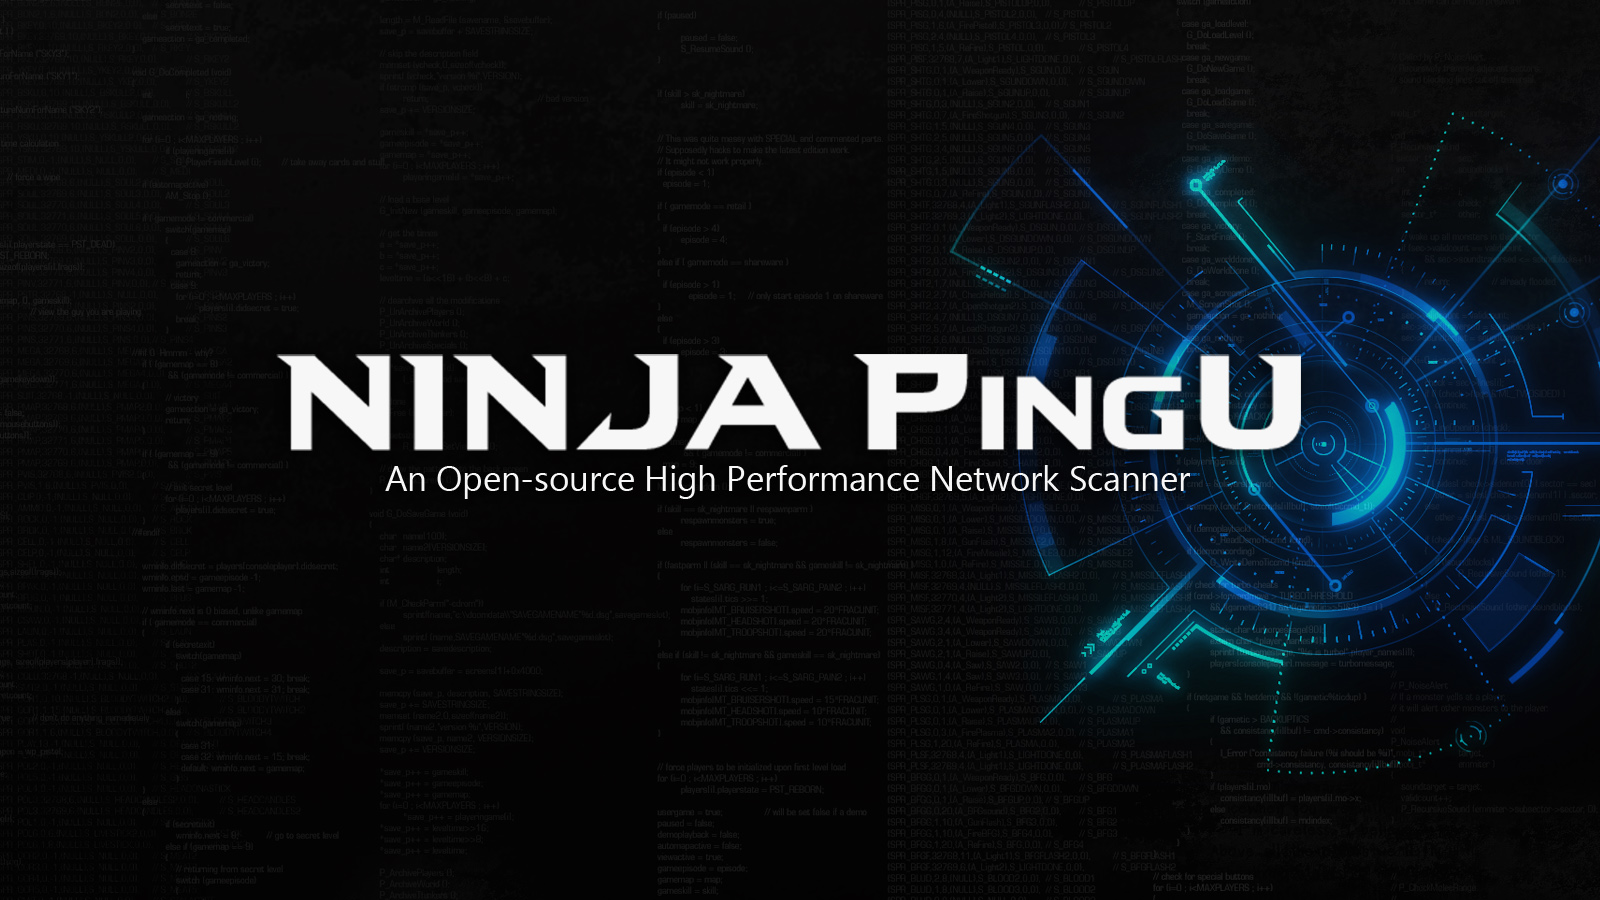 NINJA PingU - An Open-source High Performance Network Scanner